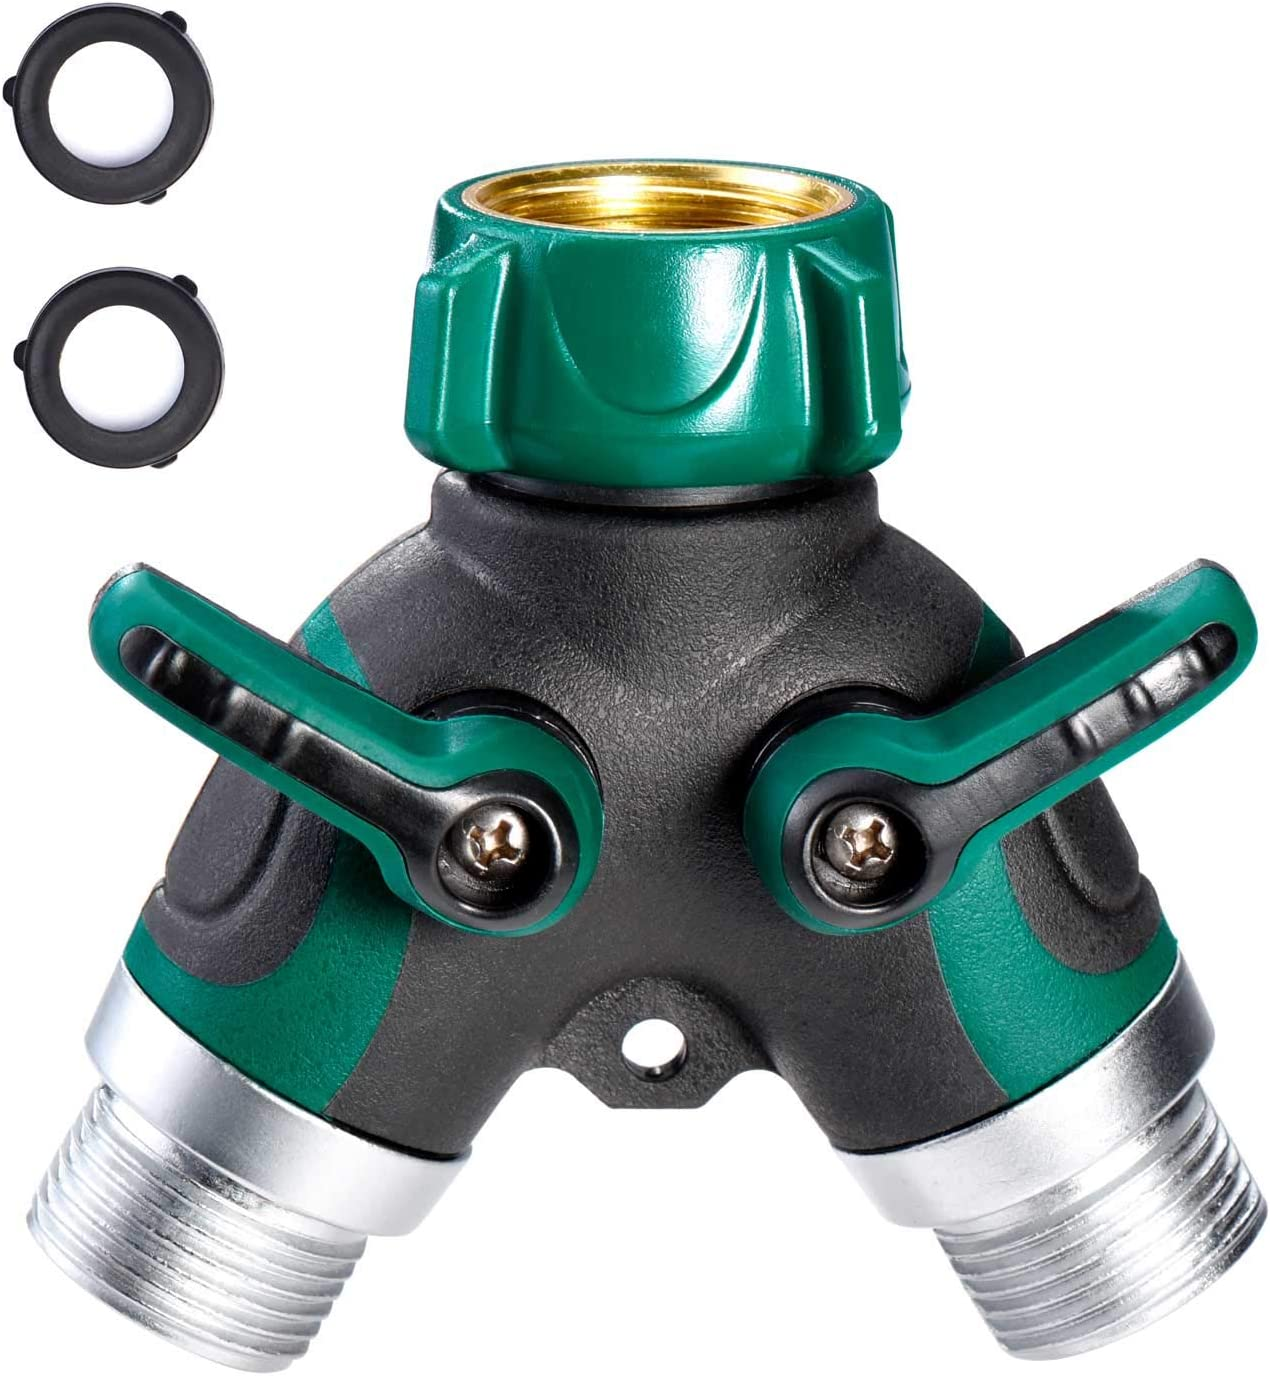 Delxo Garden Hose Splitter 2 Way Y Valve Metal Hose Connector,Solid Brass Hose Connector Garden Splitter Adapter Outdoor for Outdoor Faucet Timers,2 Rubber Hose Washers (Green)